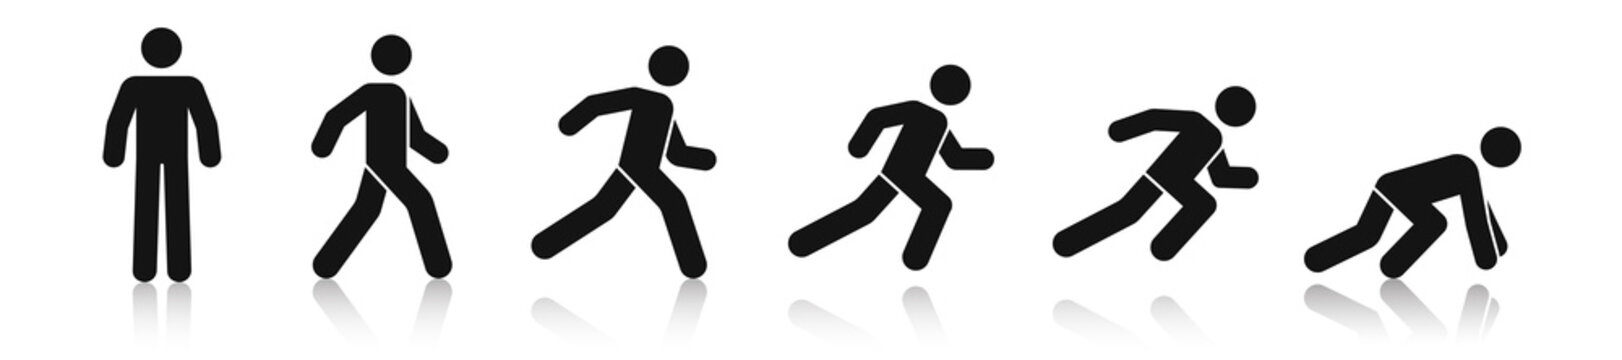 Stick figure walk and run. Running animation. Posture stickman. People icons set. Man in different poses and positions. Black silhouette. Simple cute modern design. Flat style vector illustration.